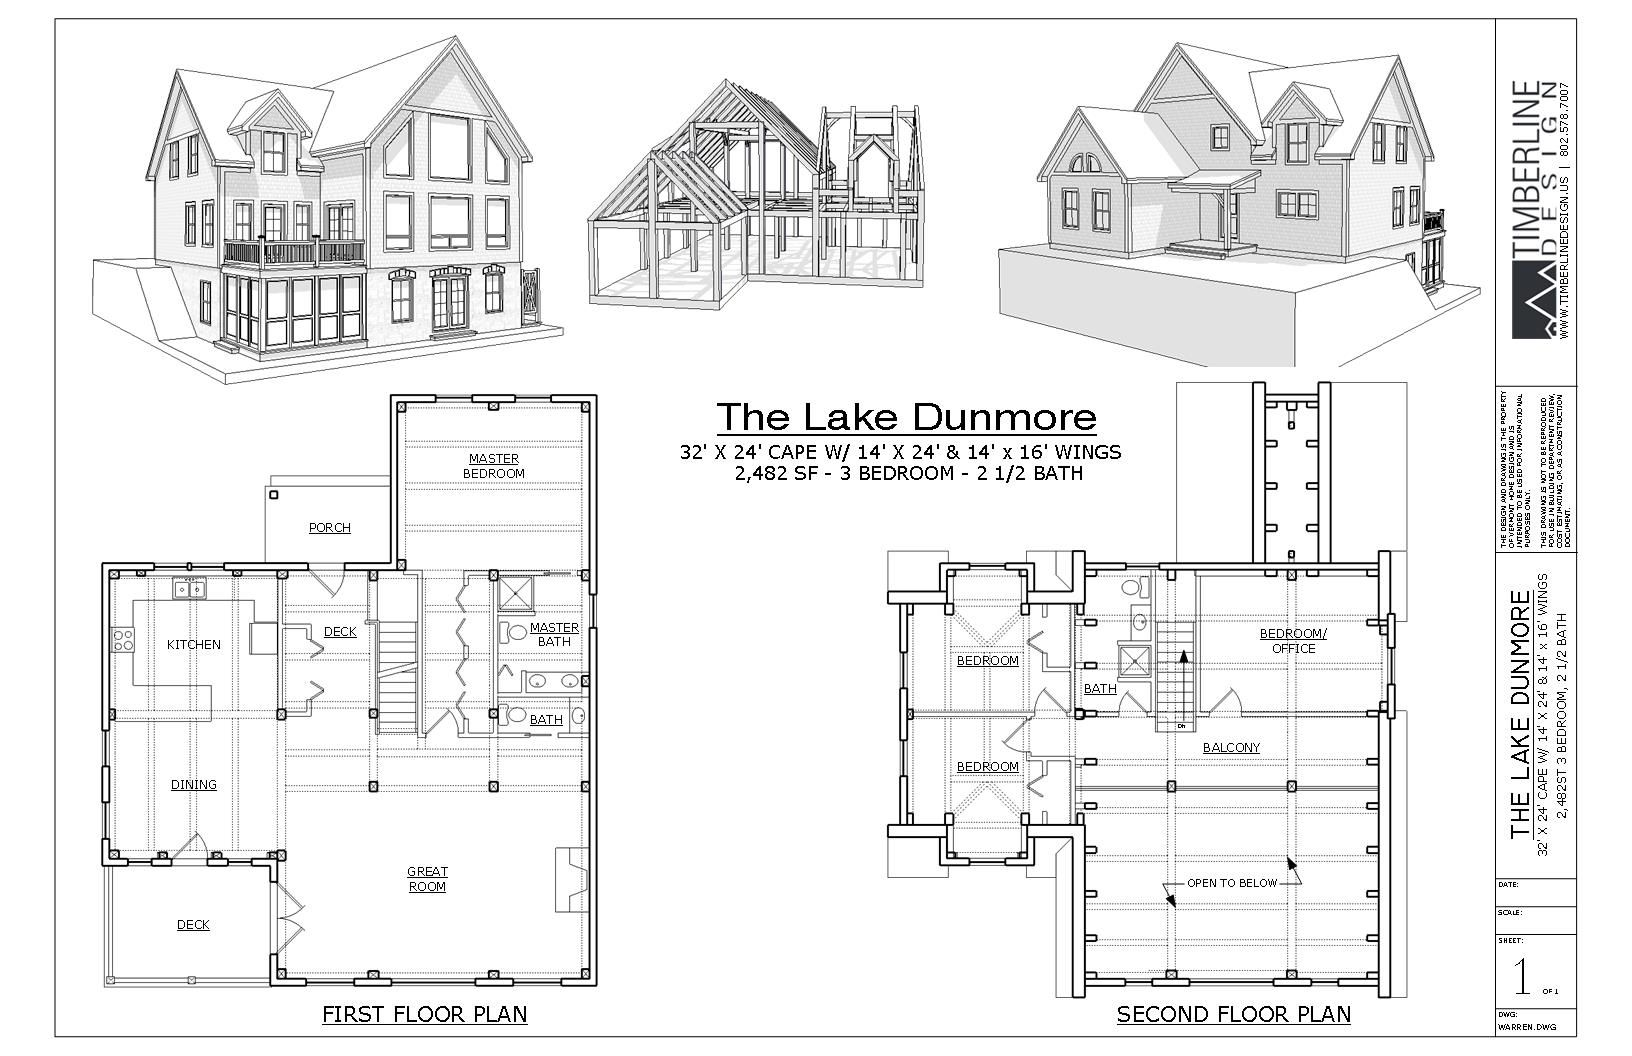 Check out this beautiful Shingle Style Timber Frame House ... on roof names, house of names, design names, house plans in zimbabwe, london names, color names, house construction plans, house model names, perspective names, house structure names, house construction drawings, feng shui names, studio names, house development names, house plant names,